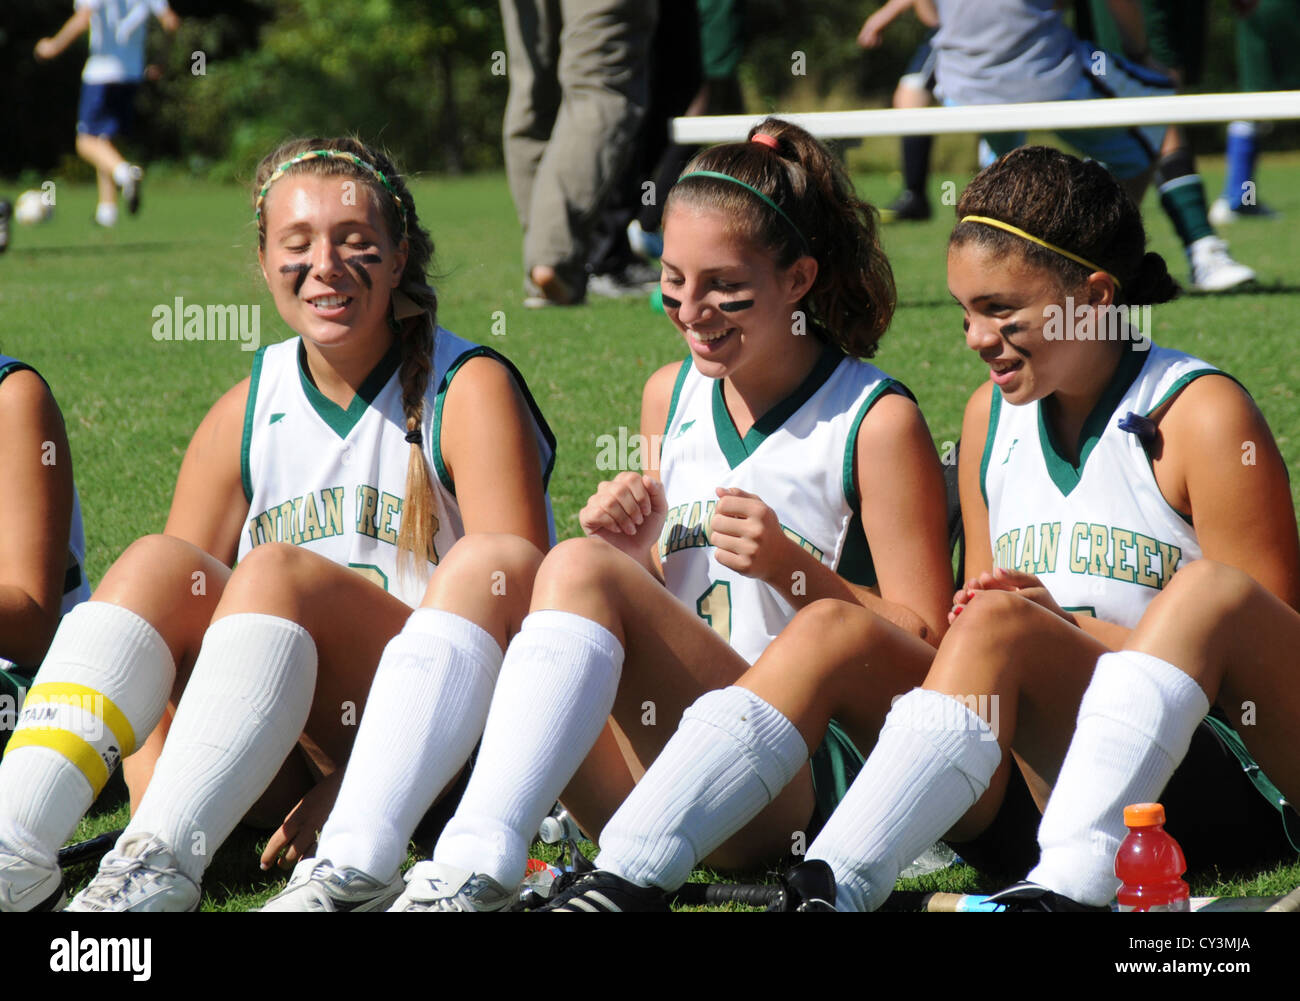 Teen soccer players on the bench waiting to play in Crownsville, Maryland - Stock Image